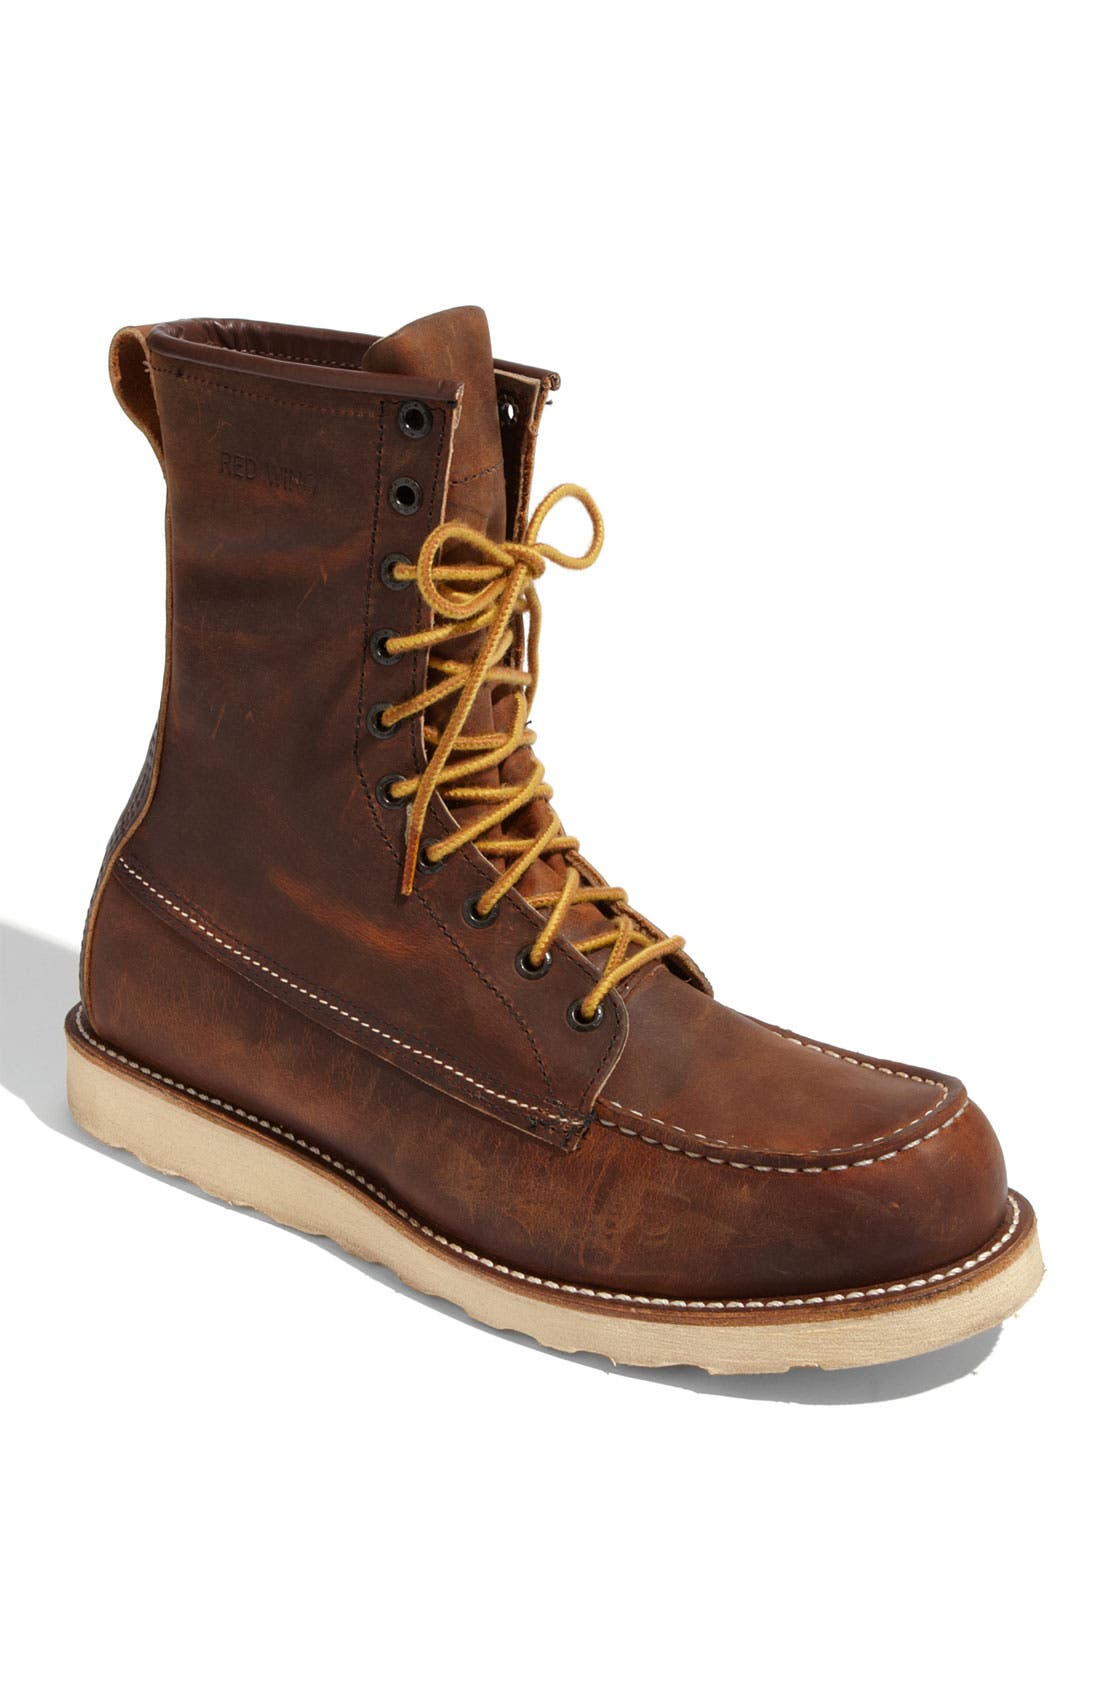 Alternate Image 1 Selected - Red Wing 'Moc' Boot